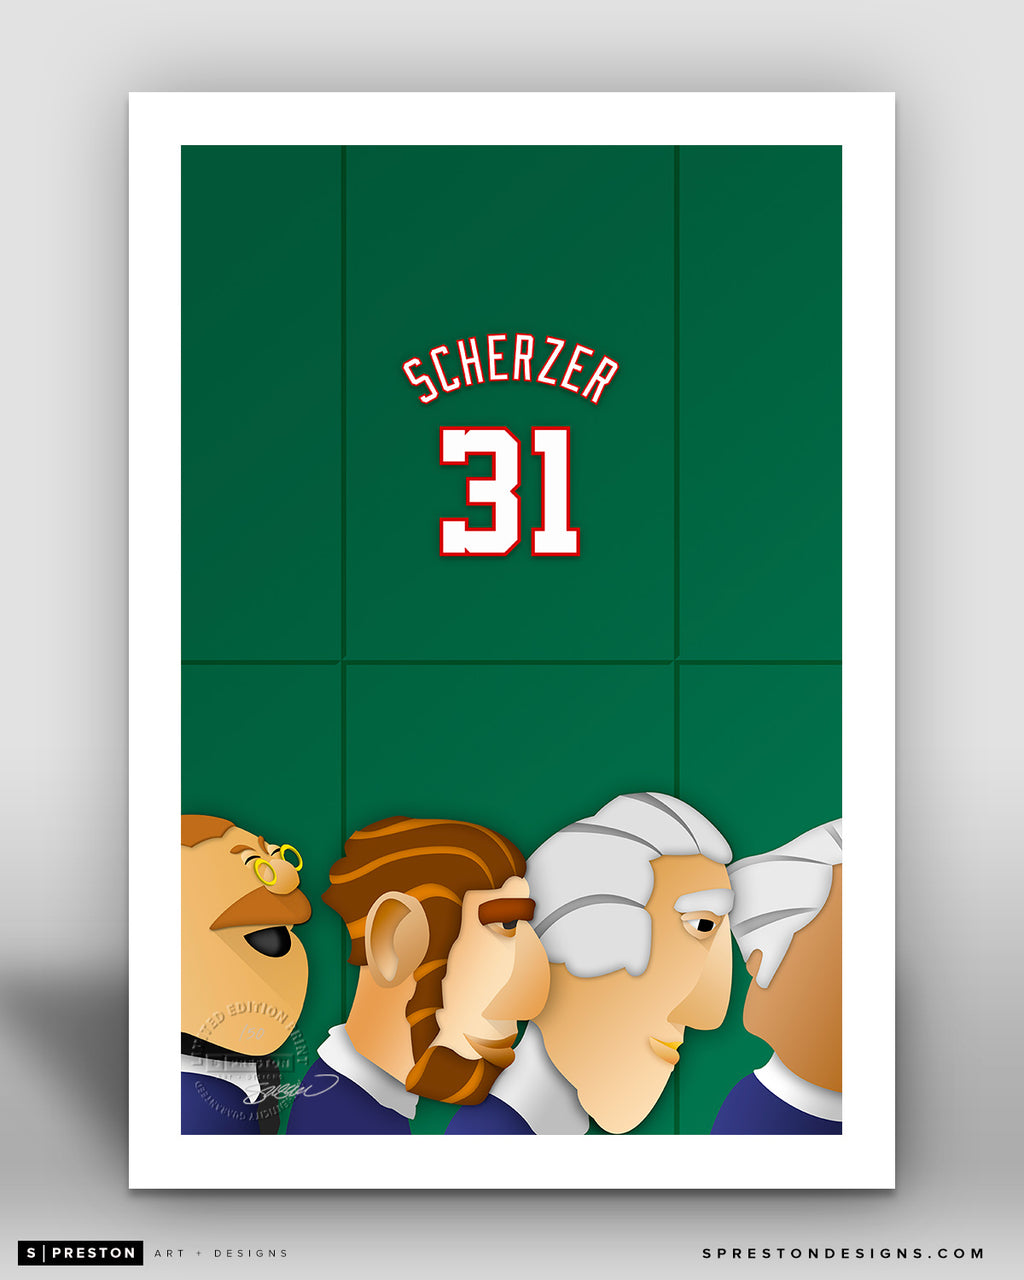 Minimalist Nationals Park - Player Series - Max Scherzer - Washington Nationals - S. Preston